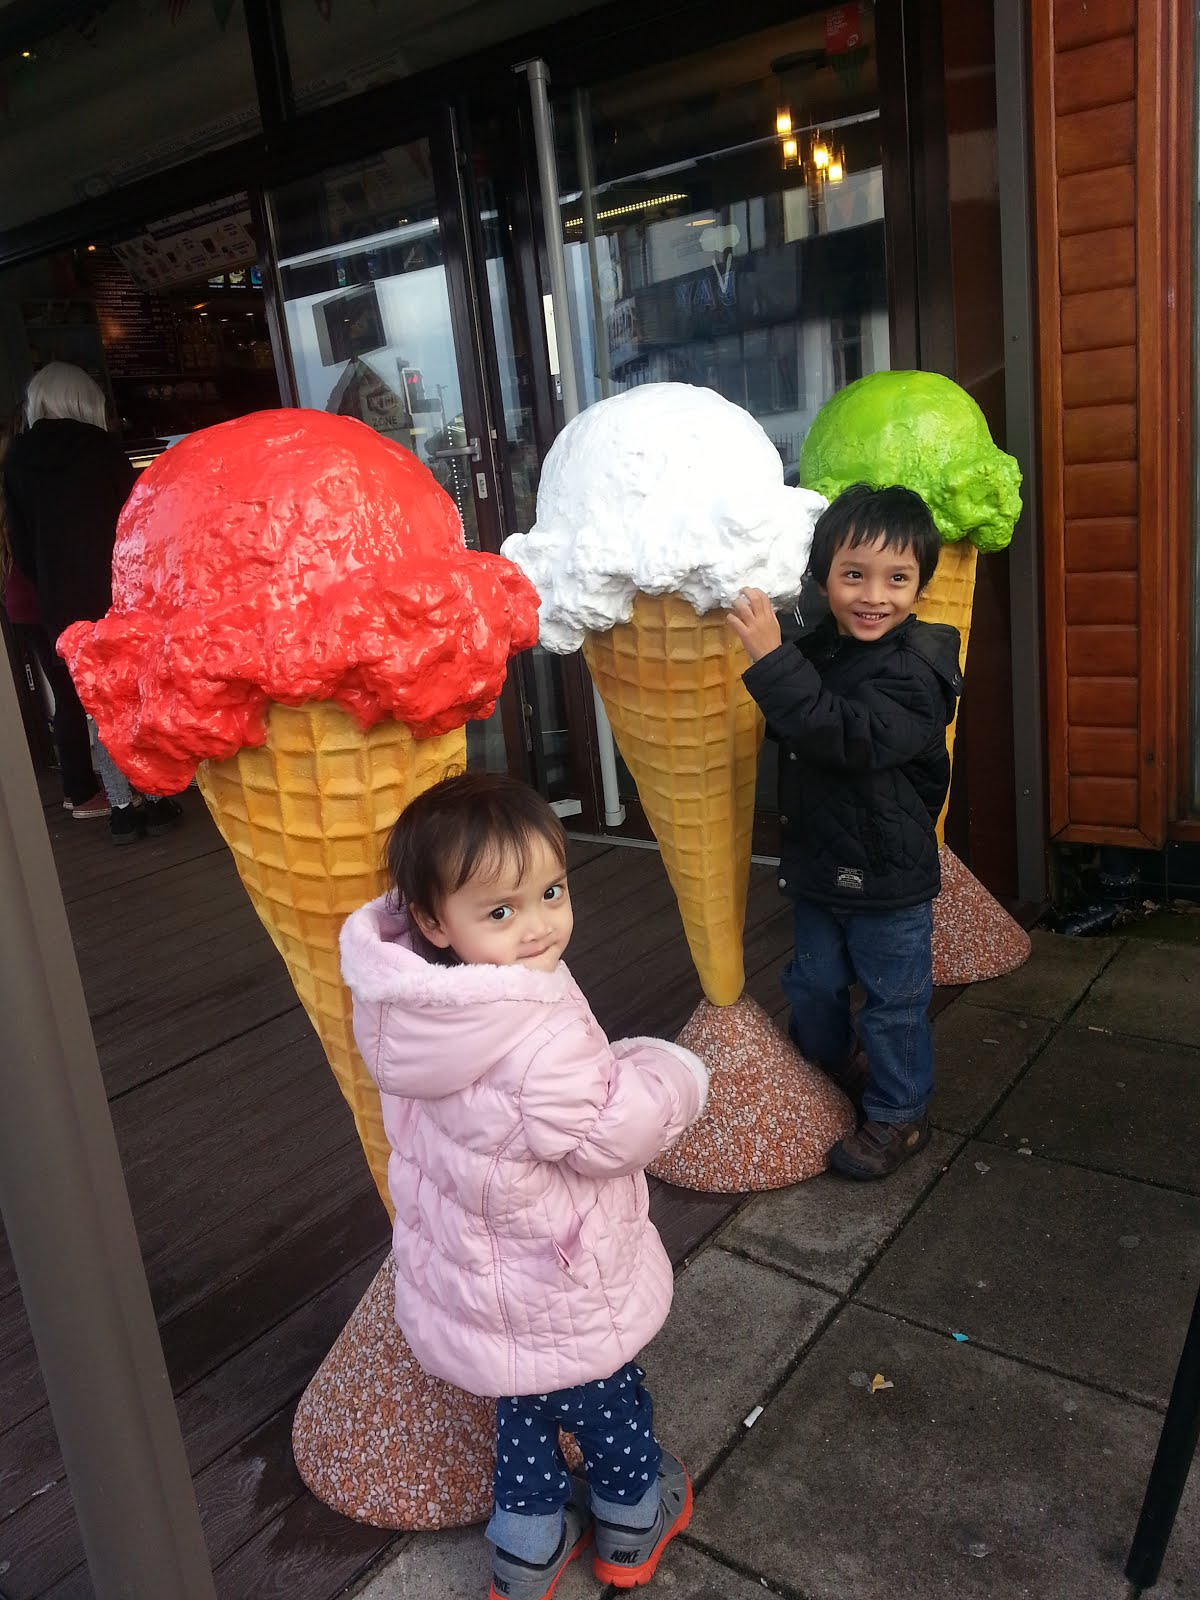 Amar and Hani with big ice creams